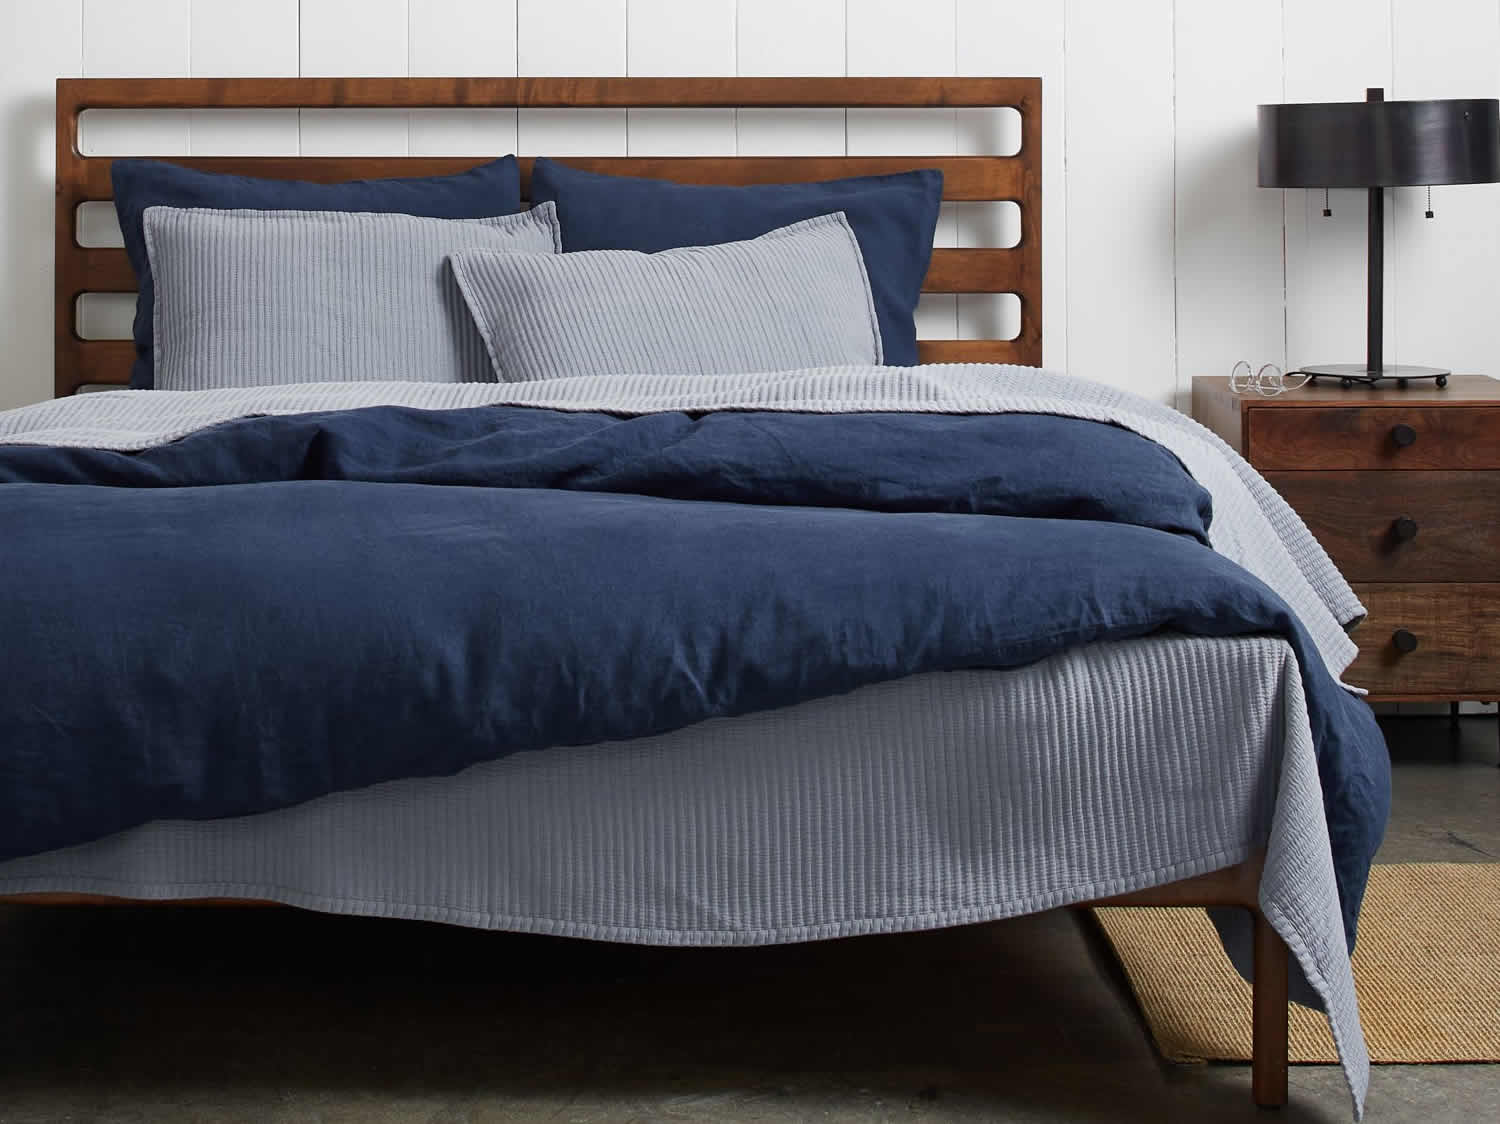 Storm Blue Coverlet  by Parachute being used under a quilt as a light-weight blanket